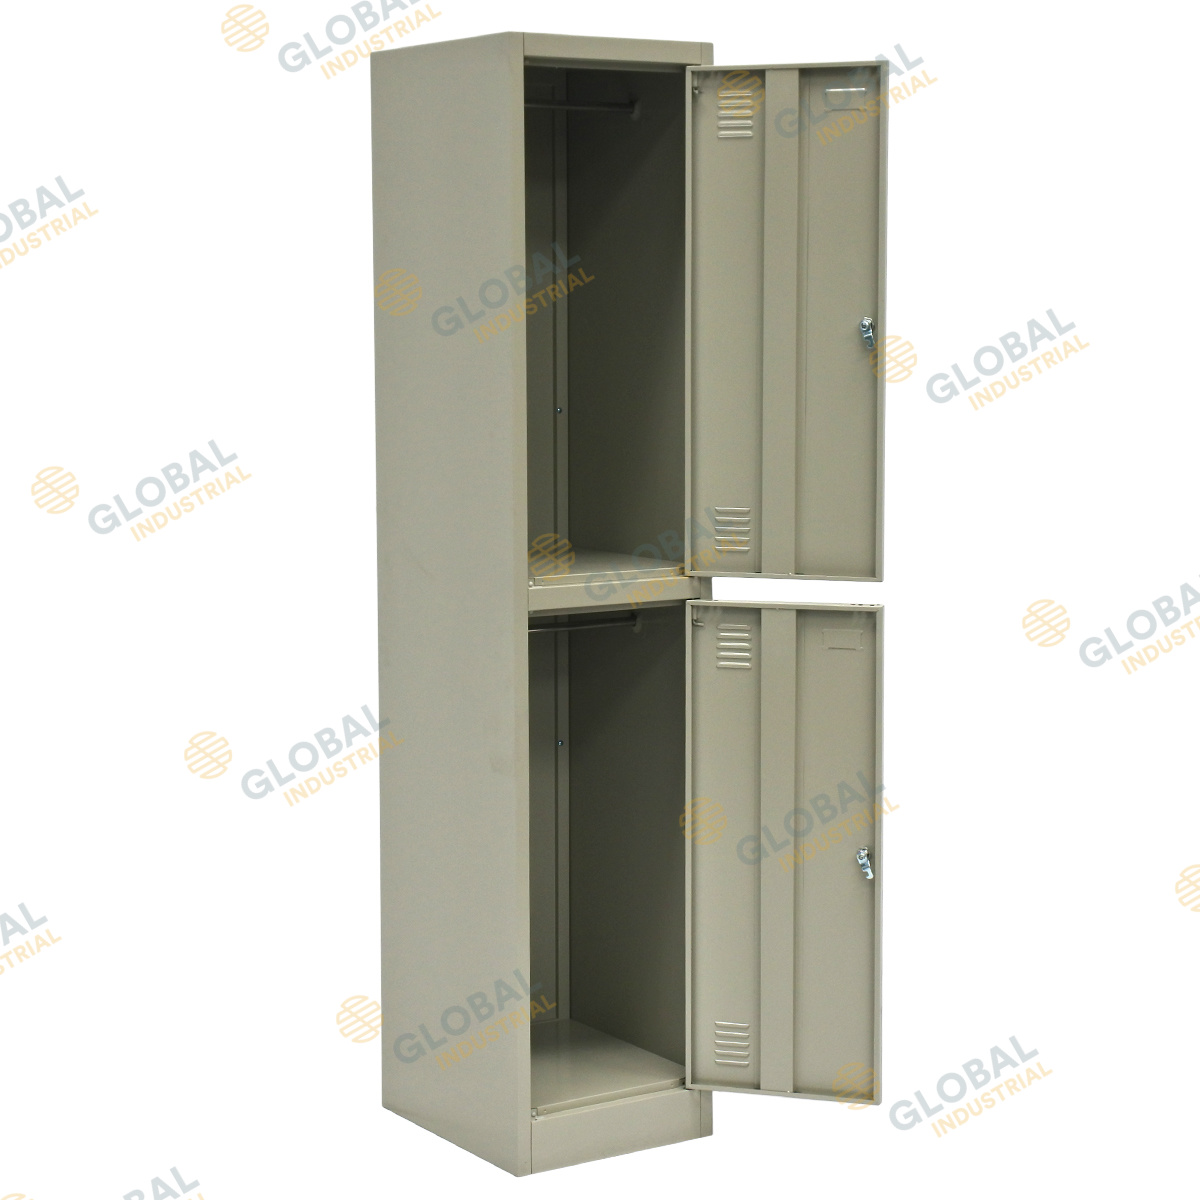 Single Width Lockers Large Enough To Store All Your Needs